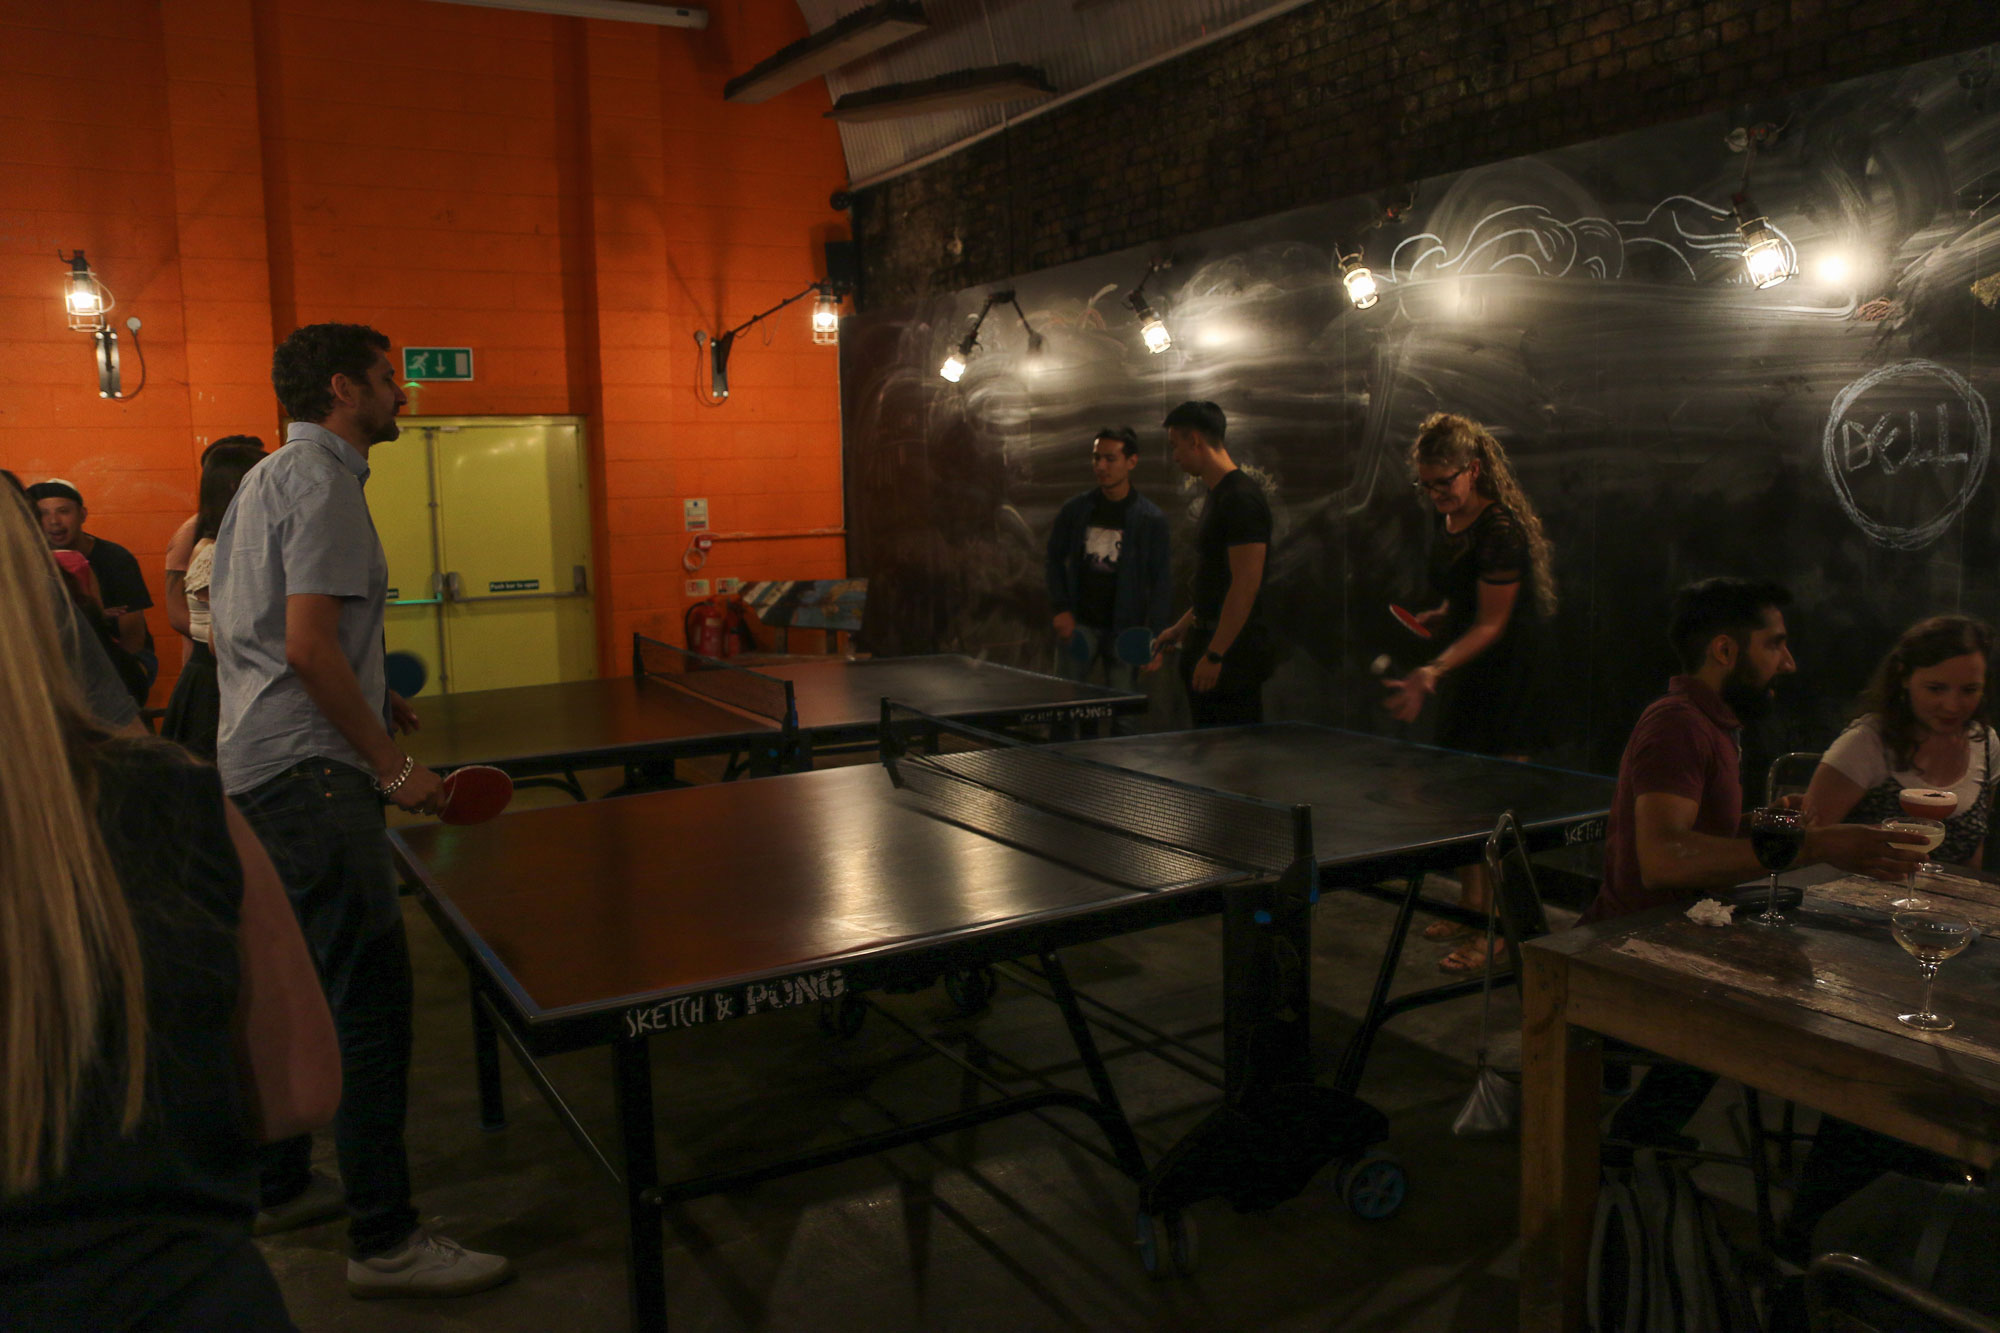 Doodle_Bar_Playing_Table_Tennis.jpg